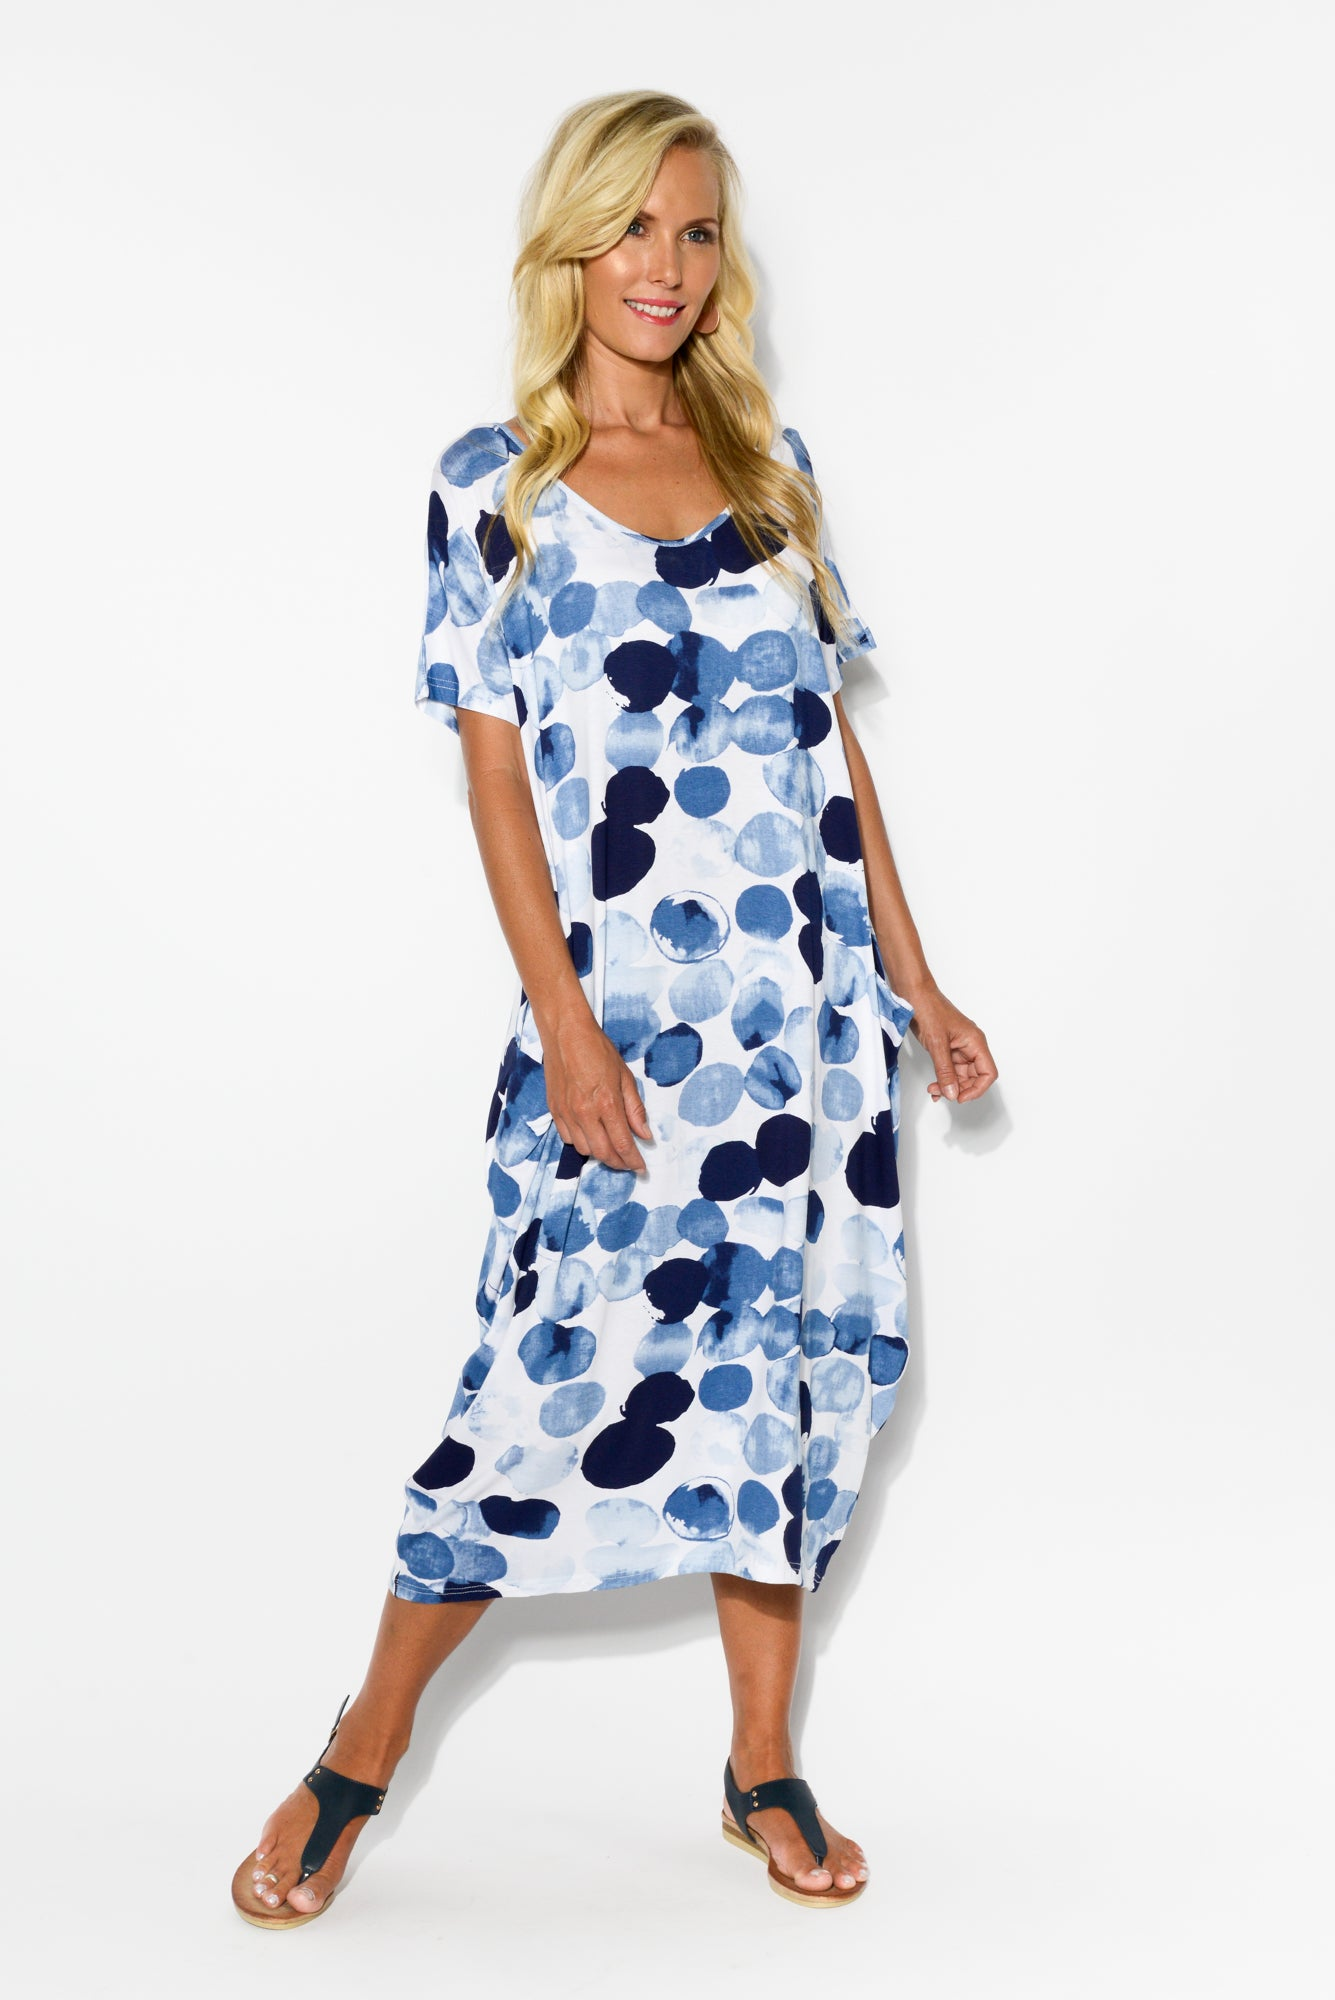 Noelle Blue Spot Draped Dress - Blue Bungalow